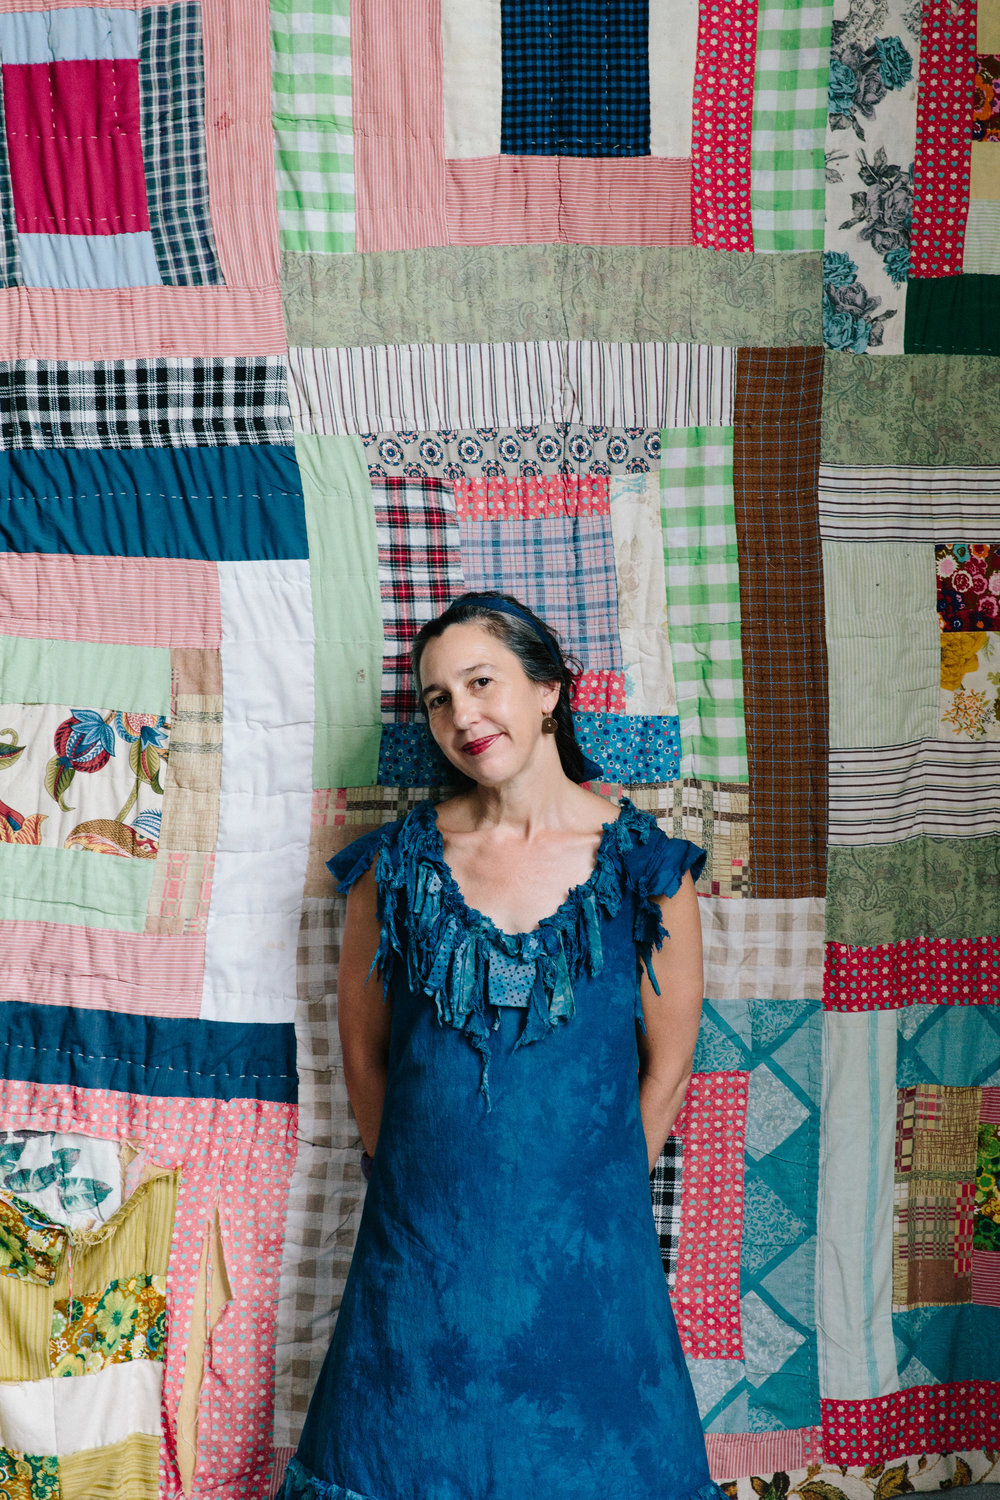 LEIGH MAGAR MADAME MAGAR CHARLESTON, SC MAY 15–28